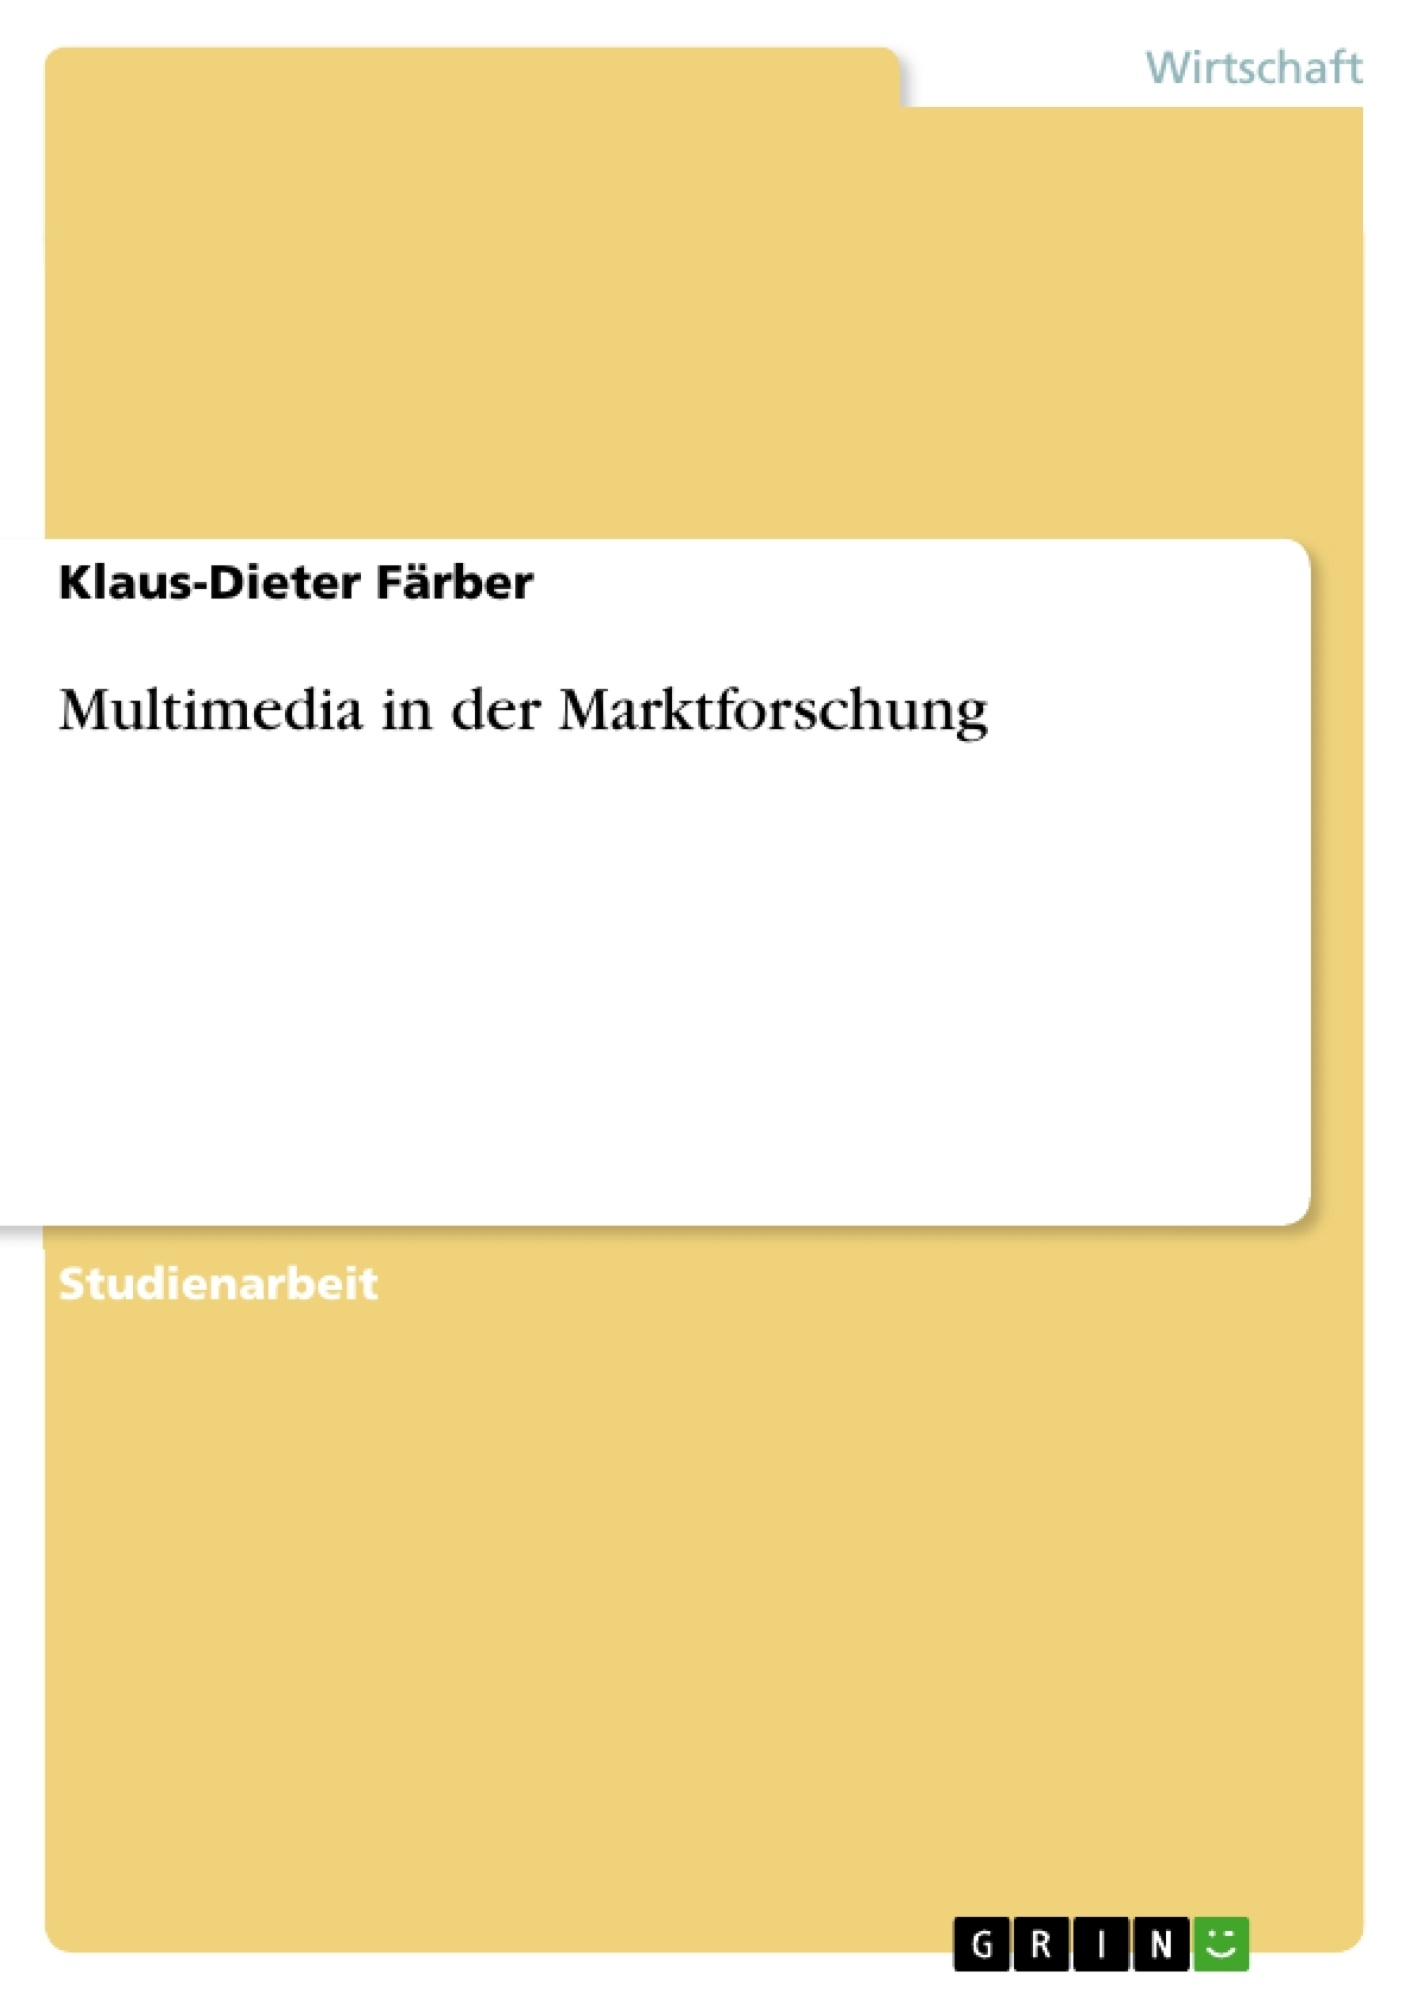 Titel: Multimedia in der Marktforschung